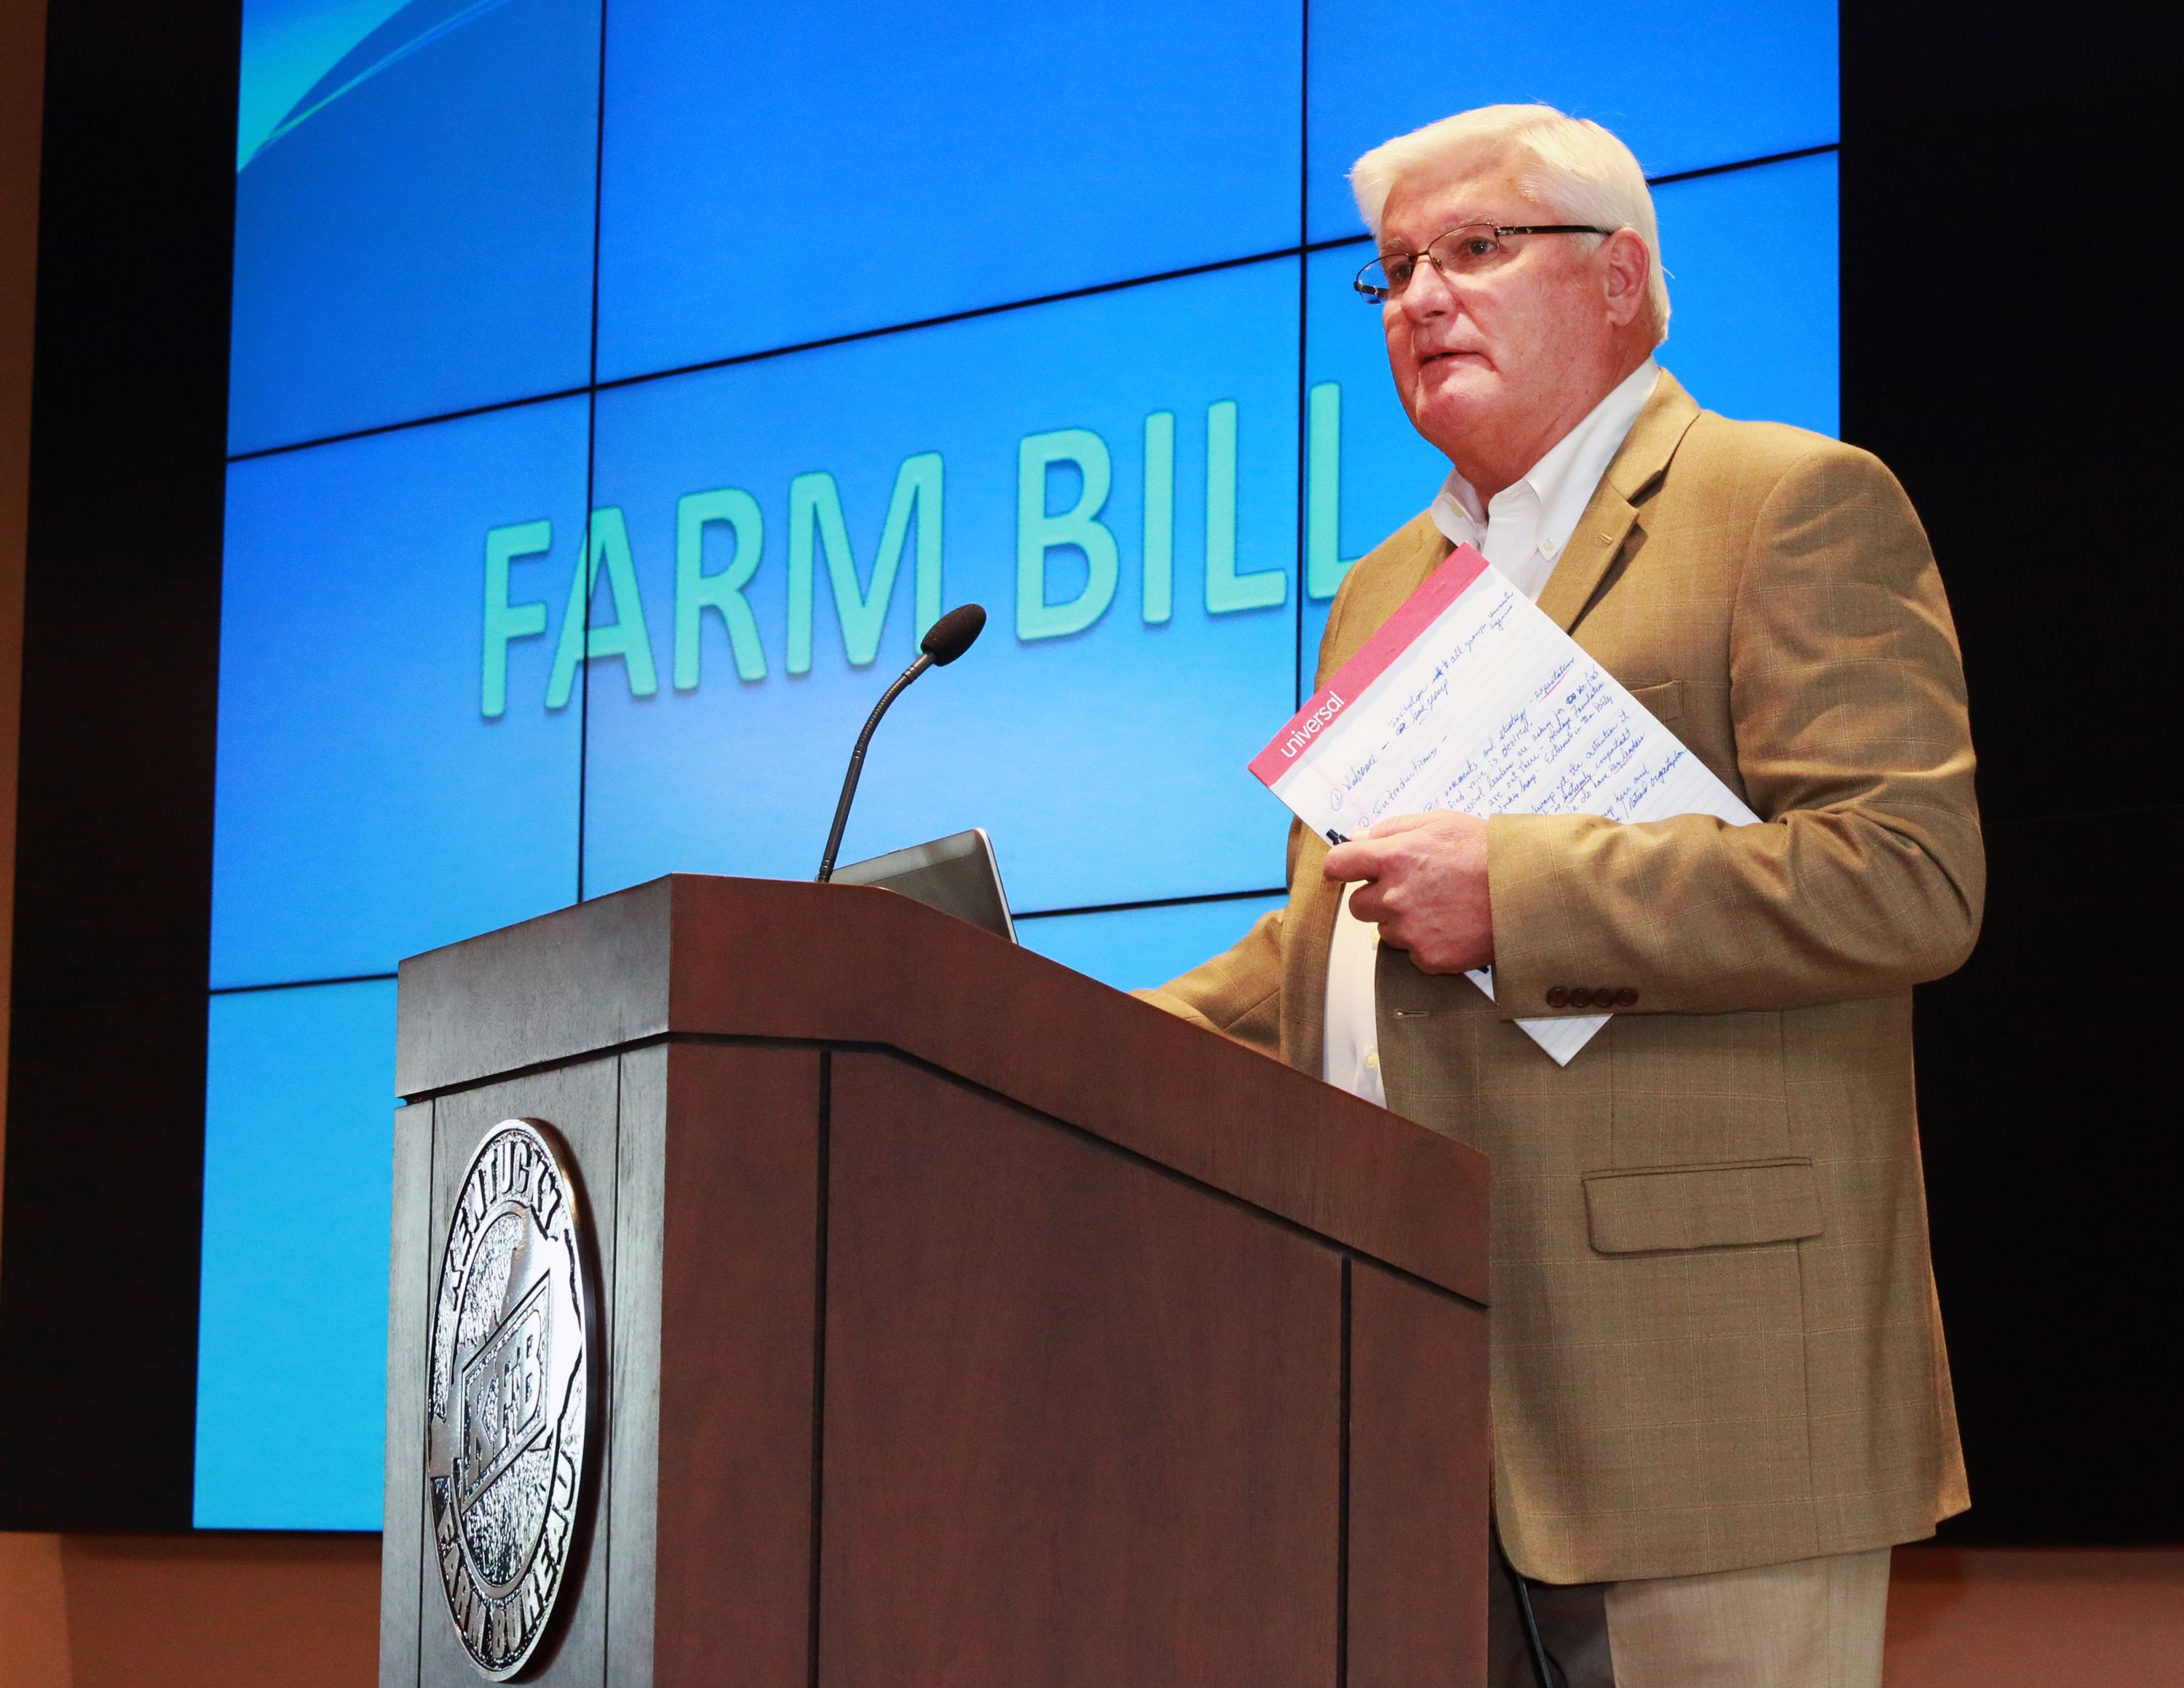 KFB President Mark Haney addressed the first meeting of the Farm Bill Working Group.